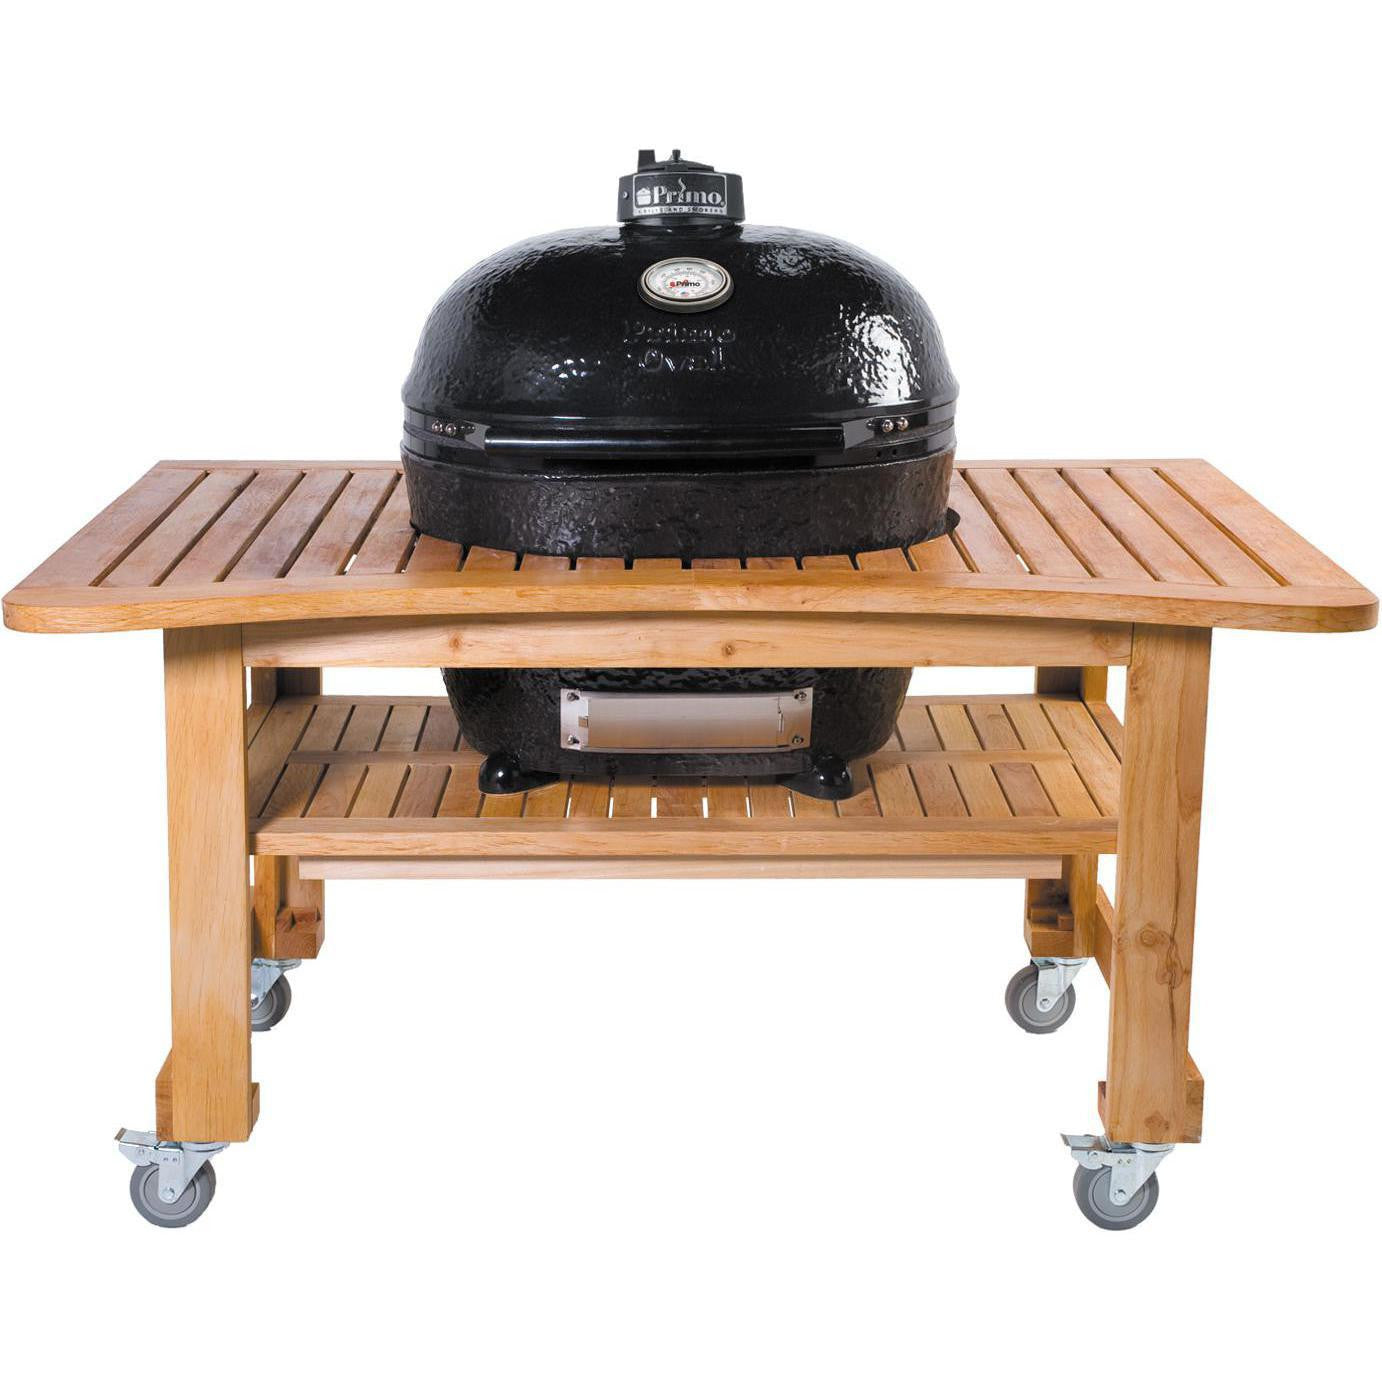 primo ceramic charcoal kamado grill oval lg 300 w teak table